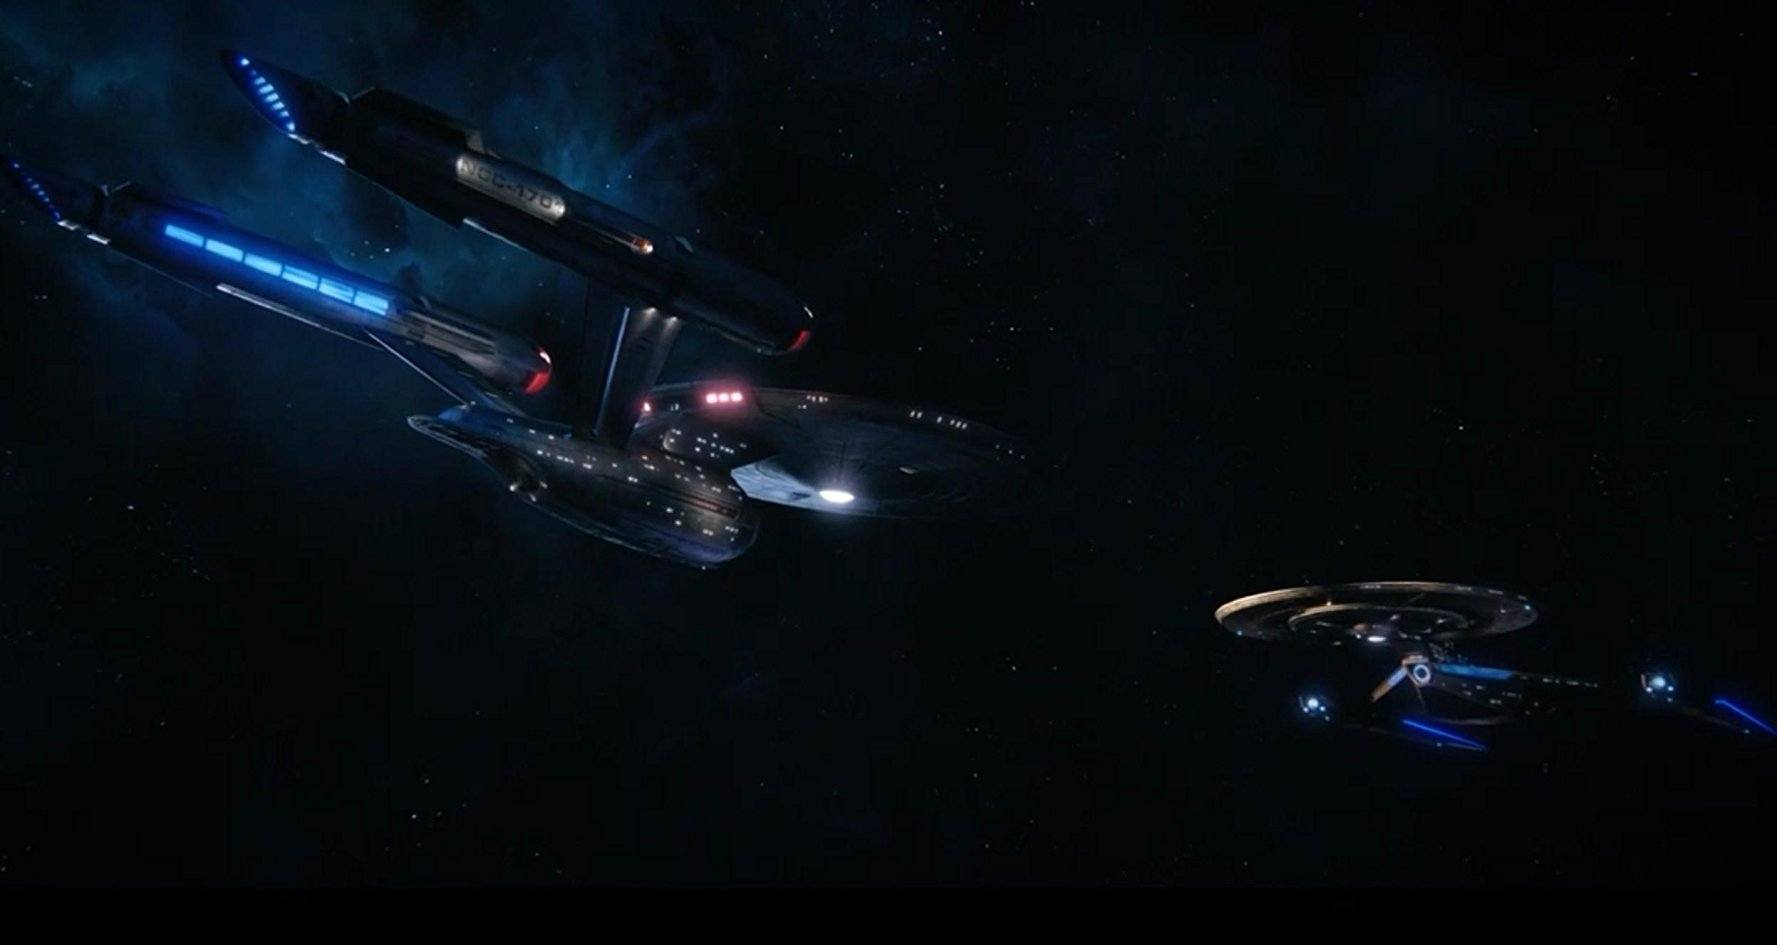 The USS Enterprise on Star Trek: Discovery